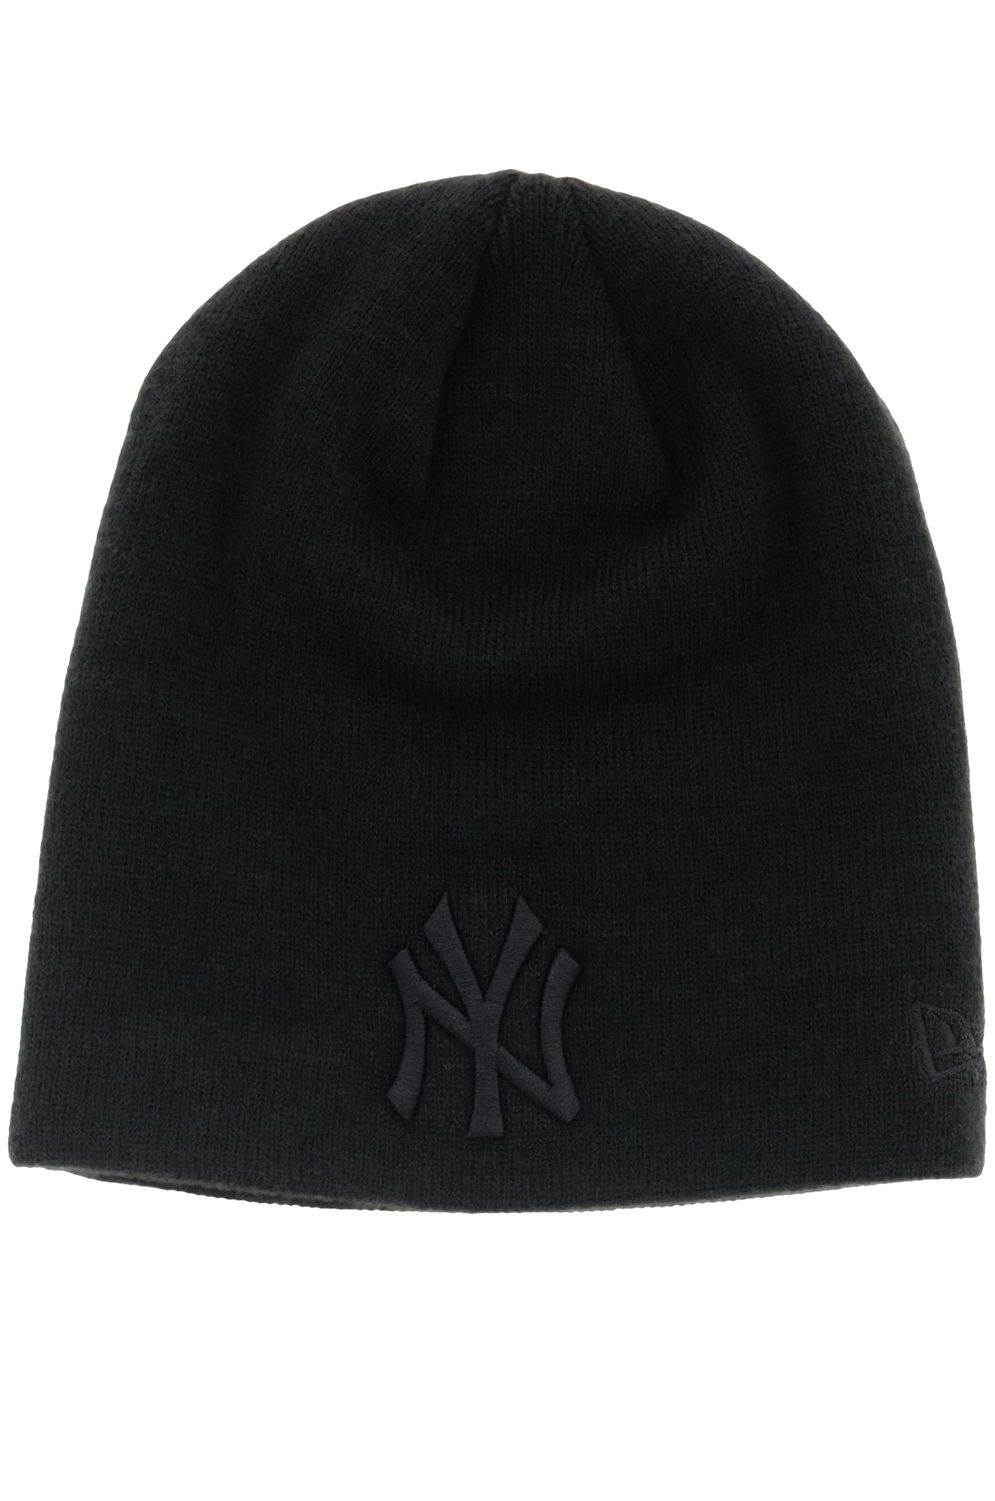 New Era Beanie DARK BASE SKULL Black/Black